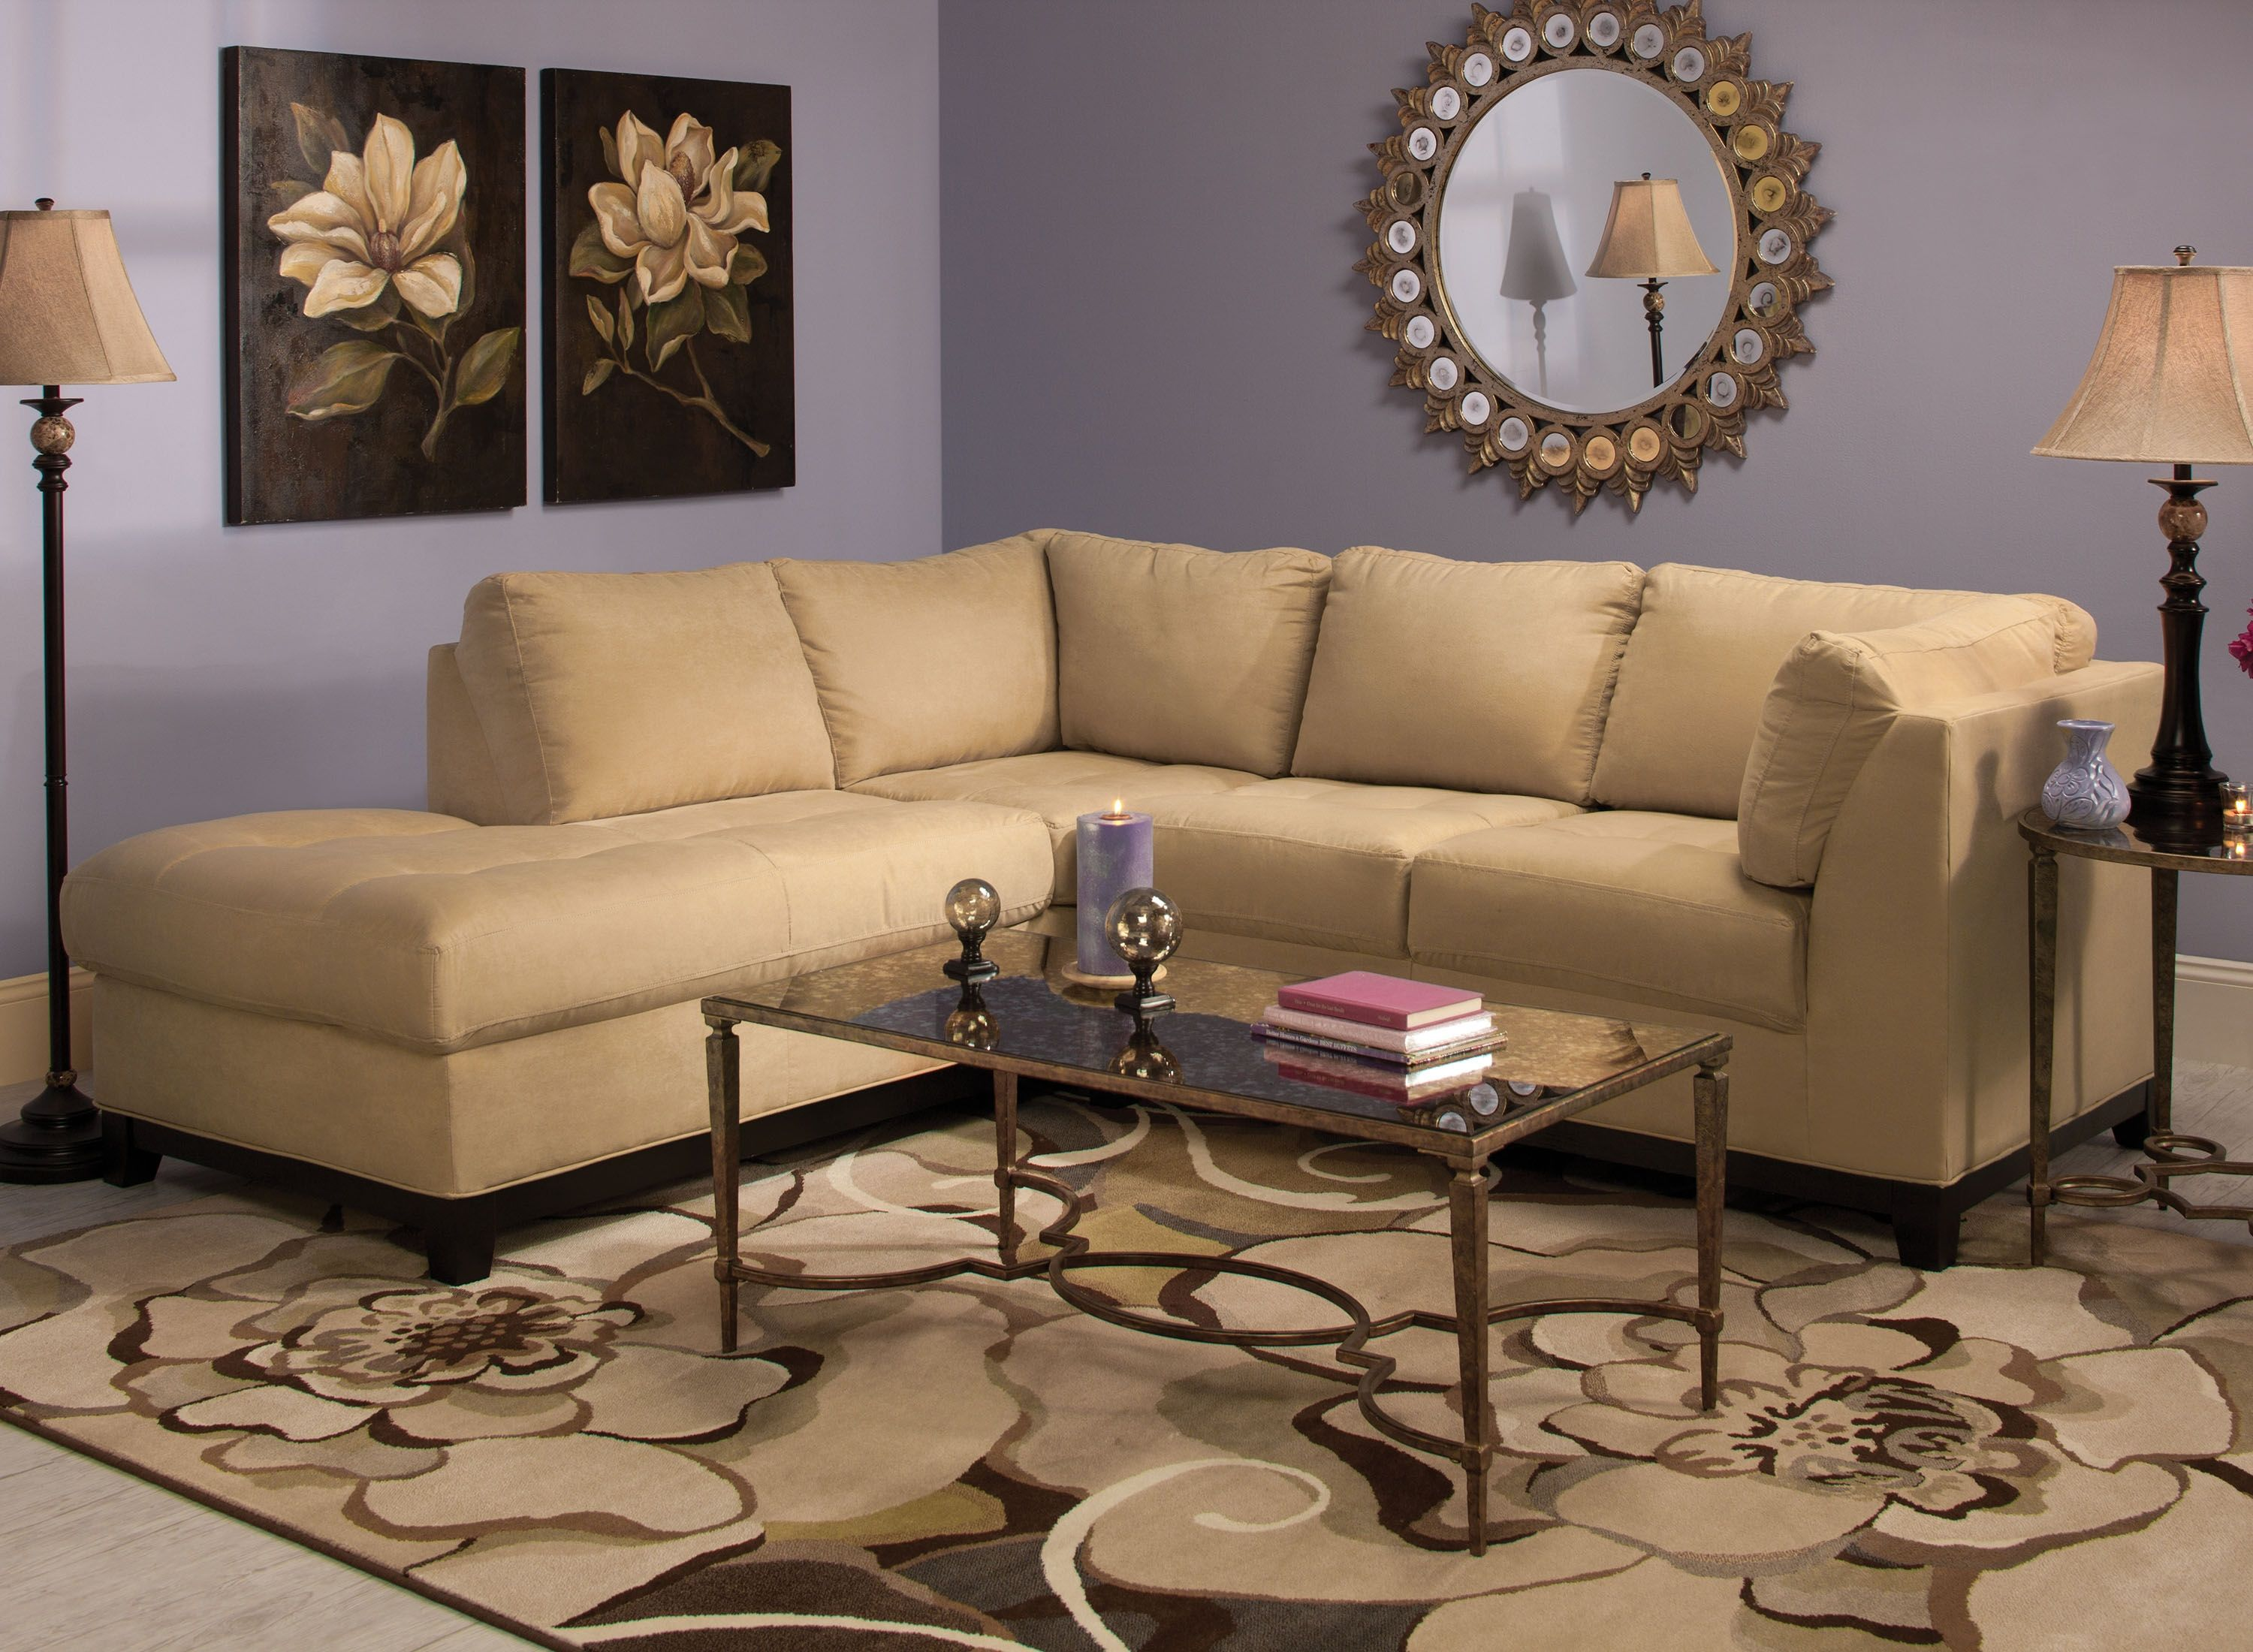 Merveilleux This Contemporary Kathy Ireland Home Wellsley 2 Piece Microfiber Sectional  Sofa Features Neutral, Dijon Colored Microfiber Thatu0027s So Easy To Decorate  With.